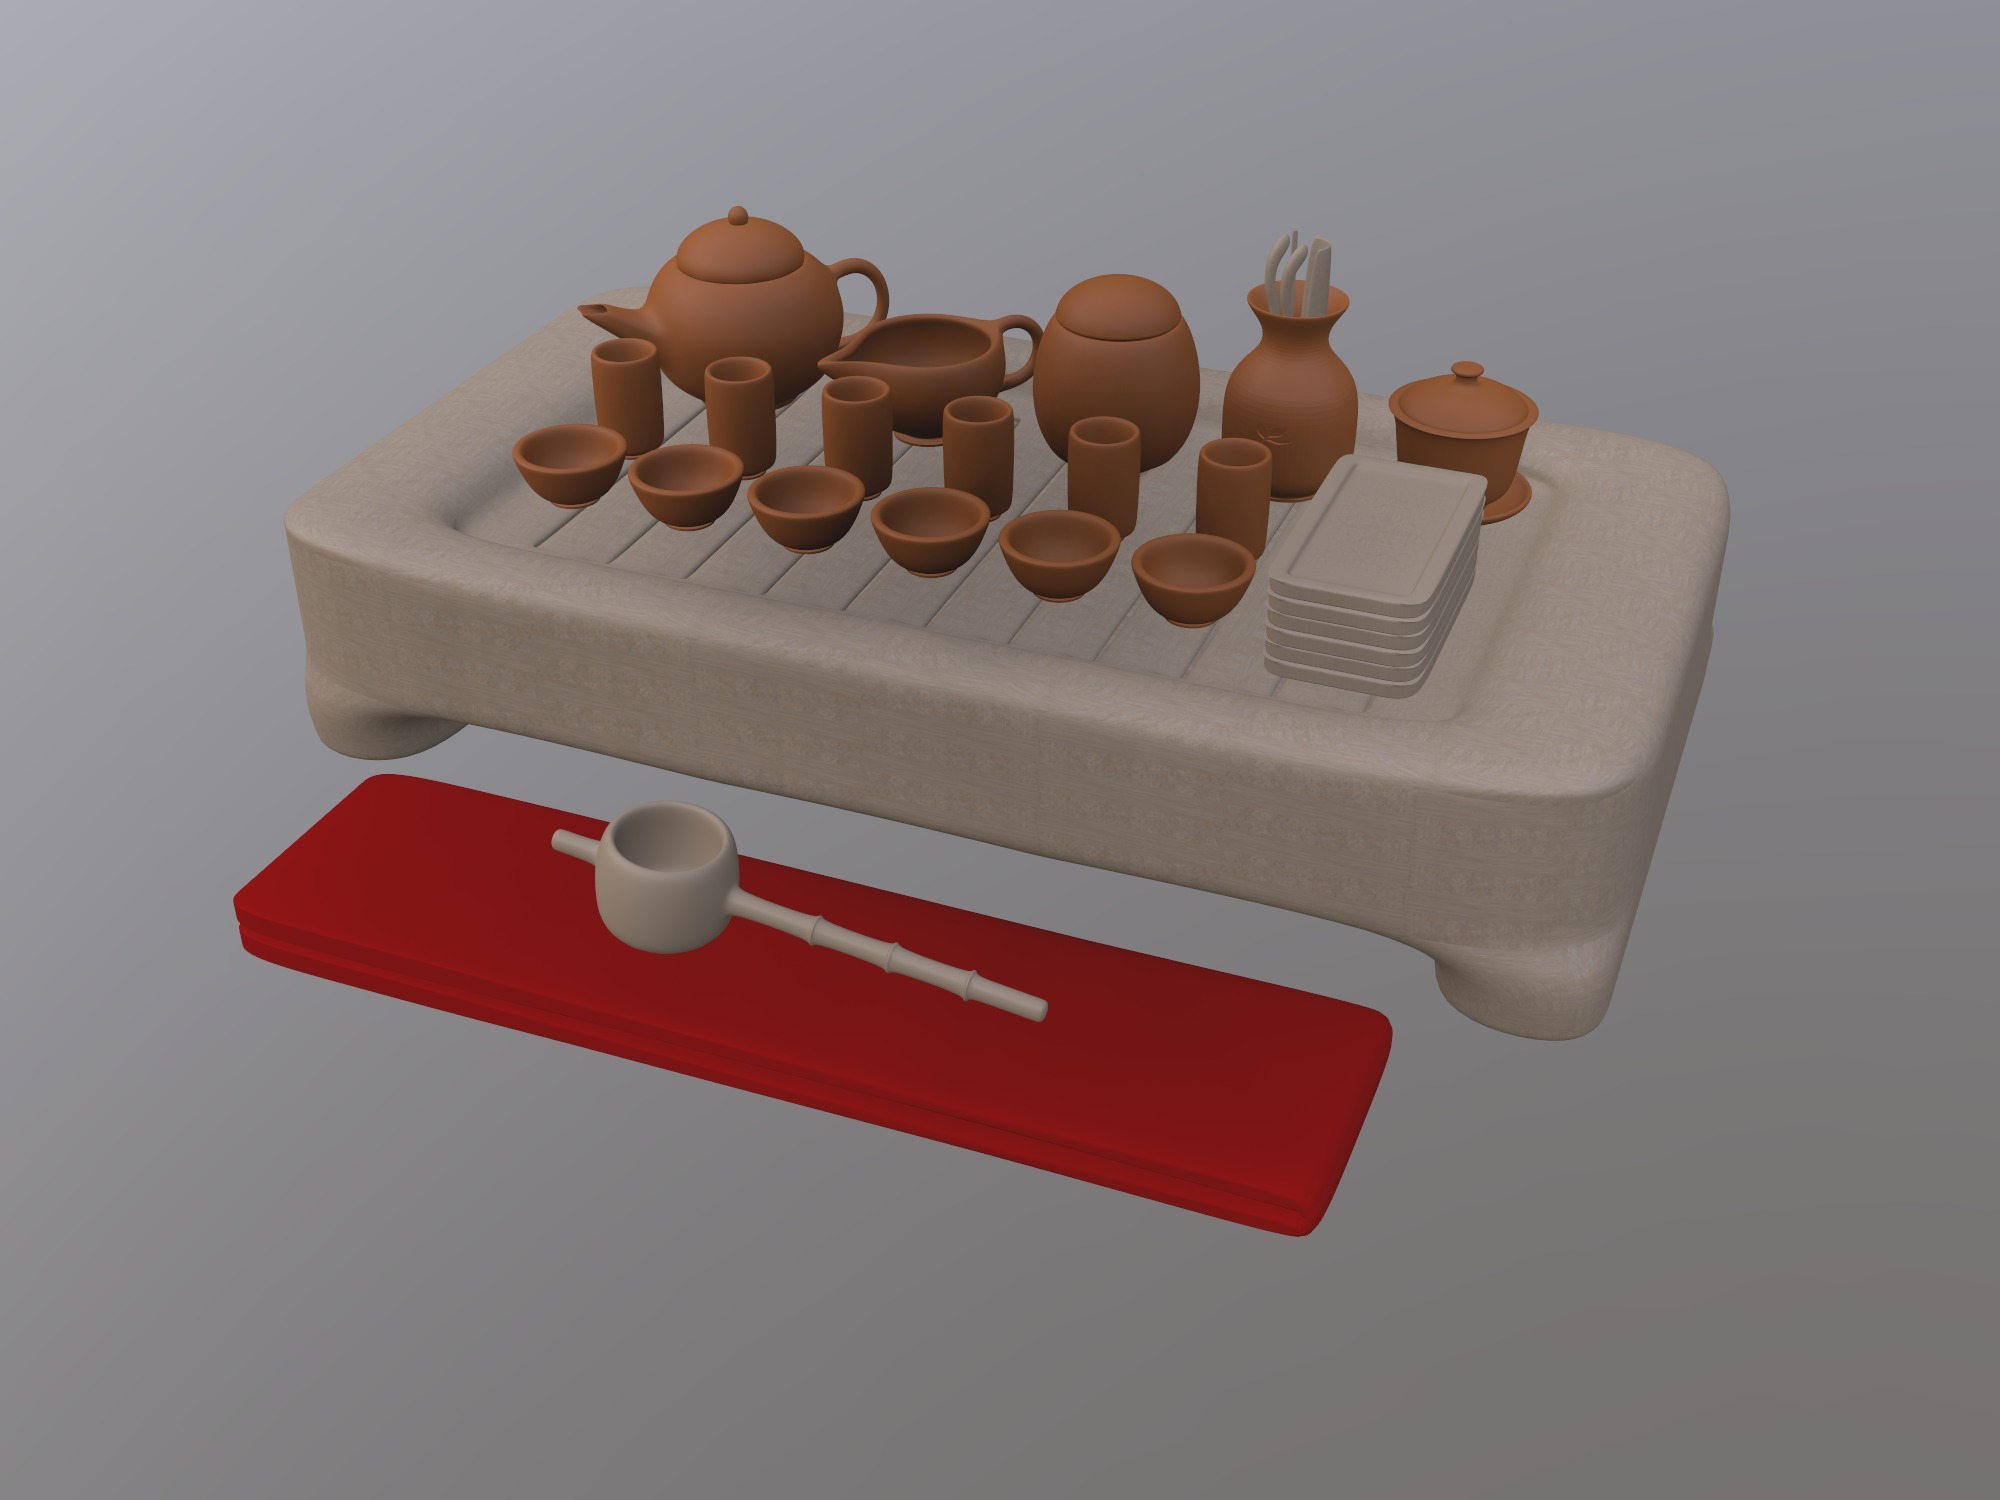 Chinese Tea Set (copy) - 3D design by Rei.T Oct 13, 2018